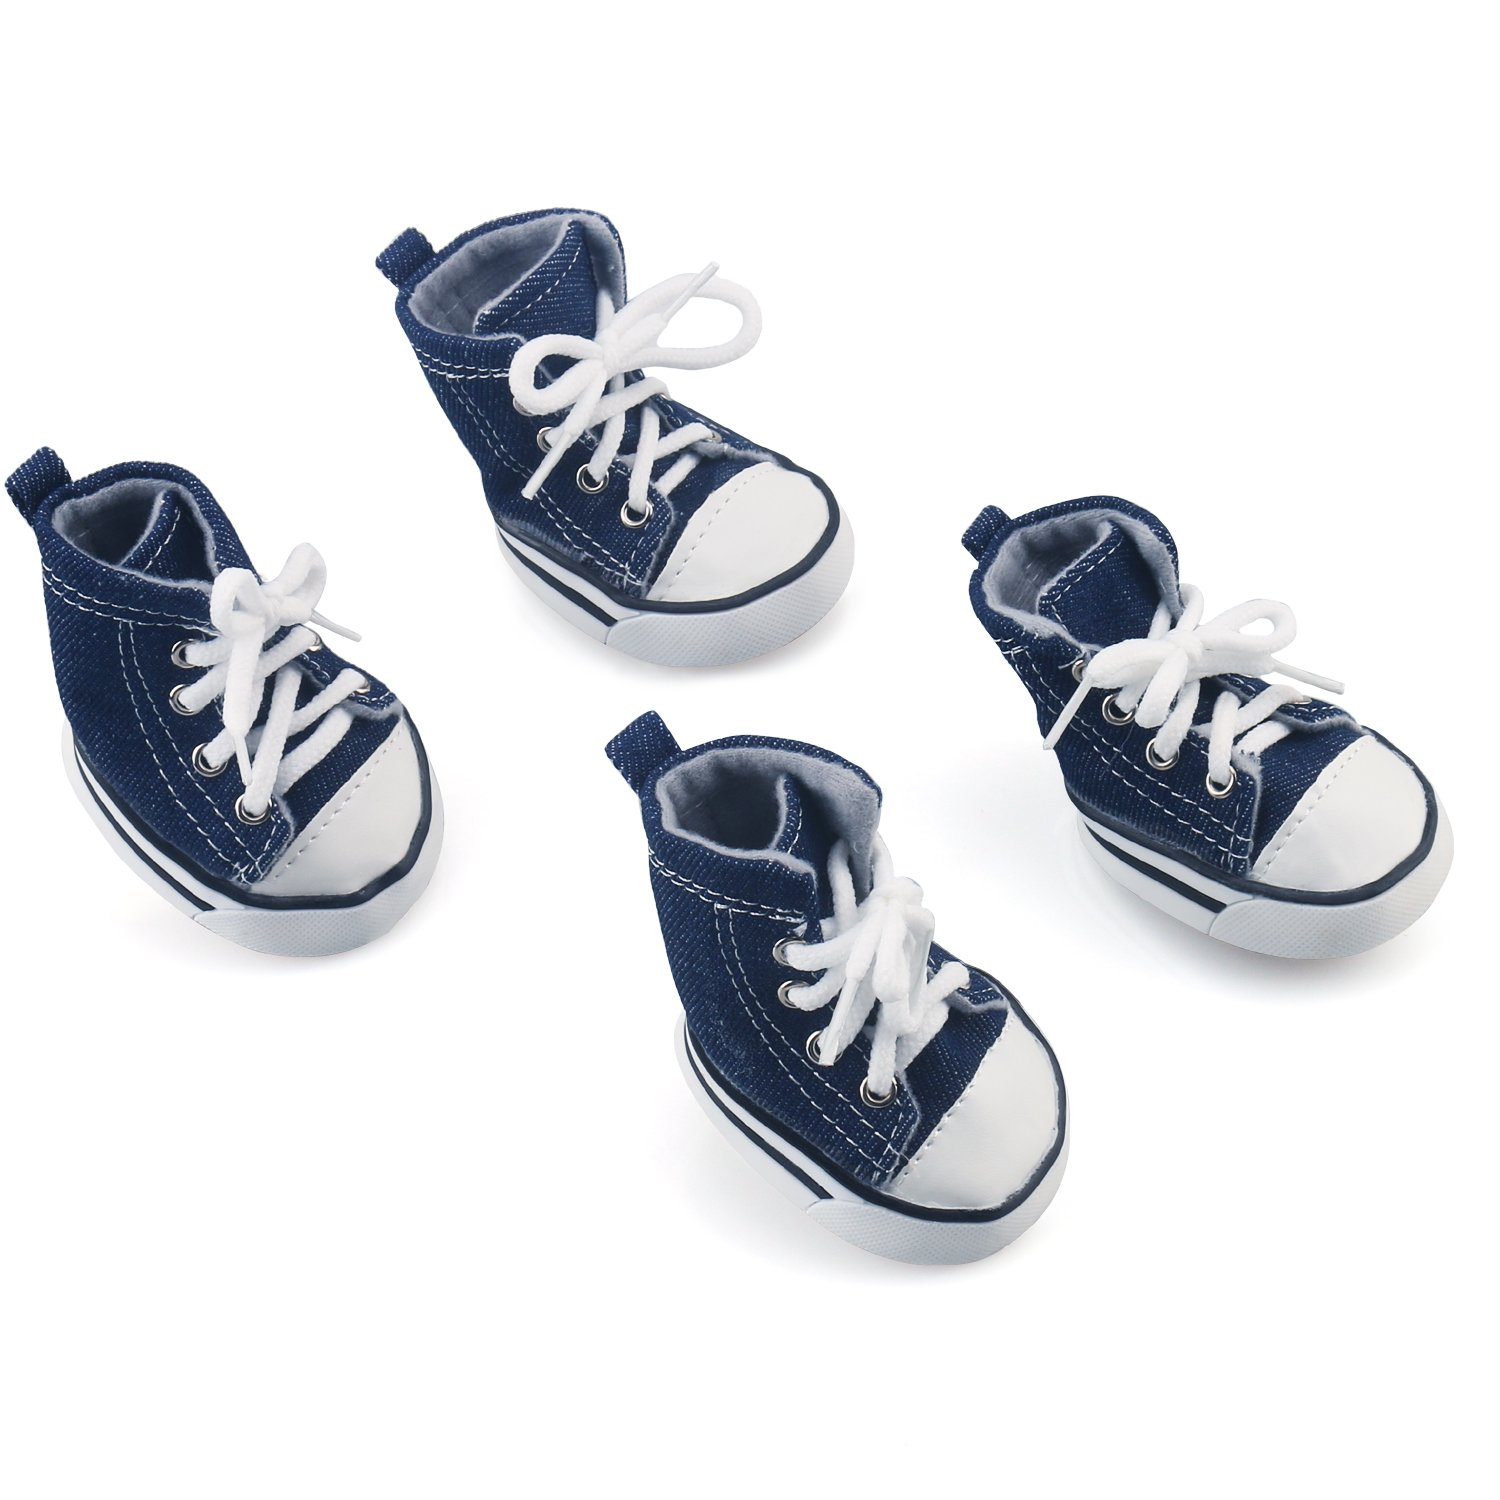 Pet Dog Shoes, RilexAwhile Cowboy Nonslip Puppy Sport Denim Blue Casual Dog Canvas Sneaker Paw Protector for Small Dogs Chihuahua Yorkie Doggies,4 pcs (Size 6: 2.36'' x 1.69''(L x W))